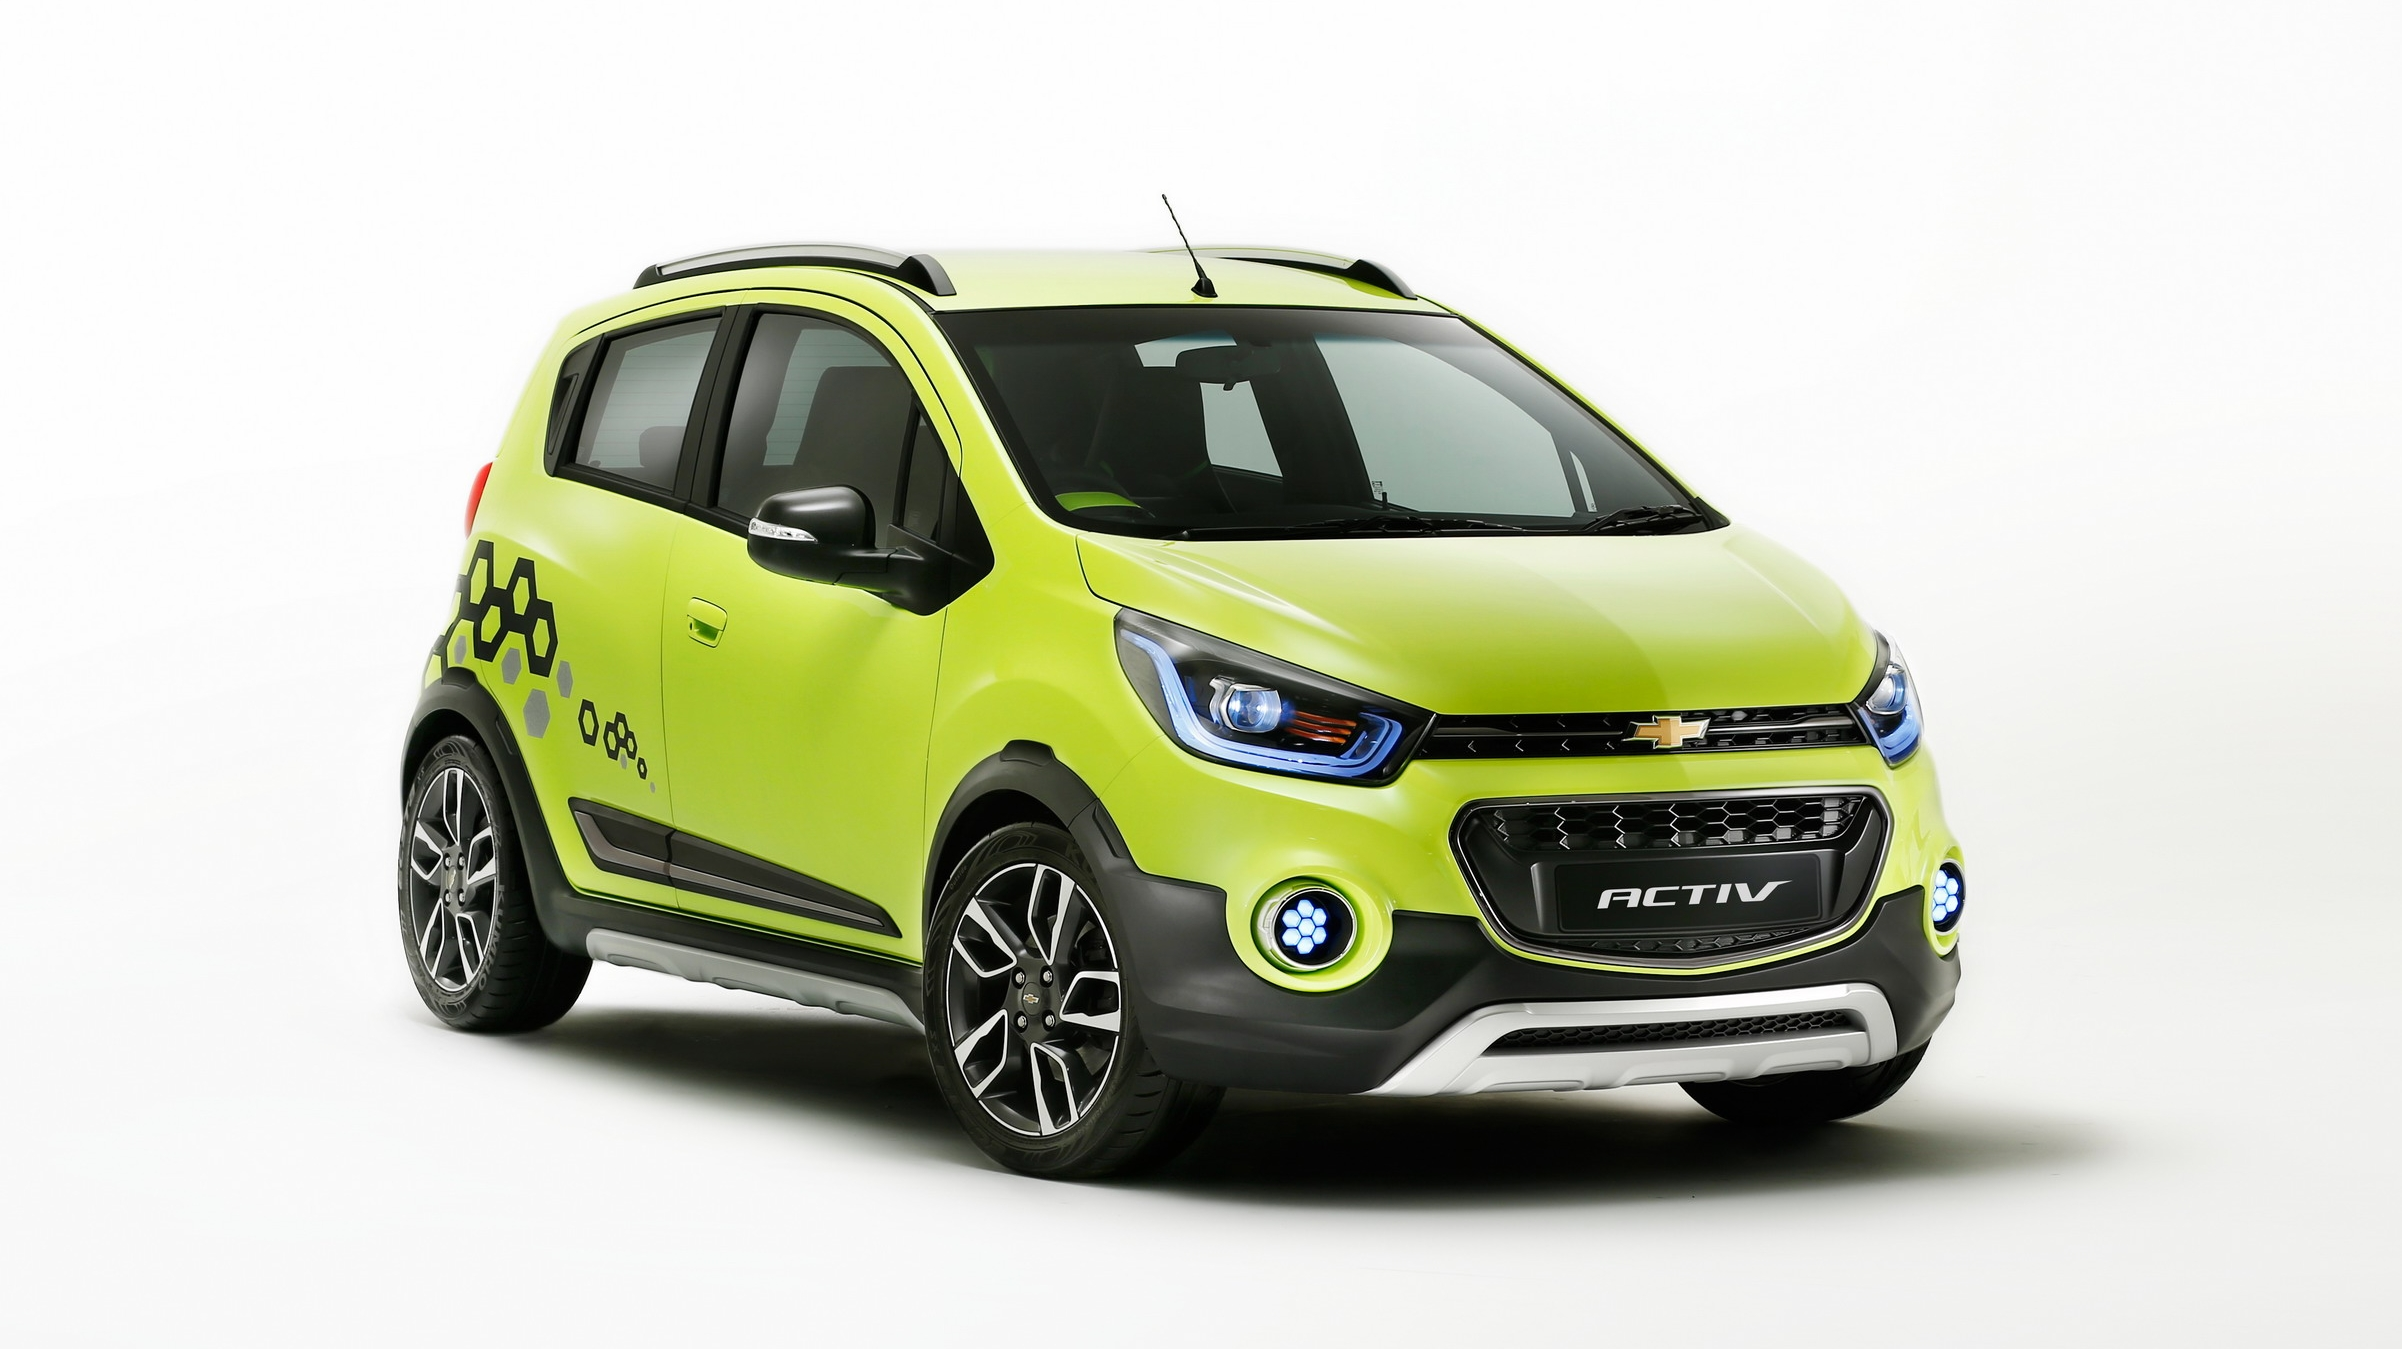 2016 Chevrolet Beat Activ Concept Pictures, Photos ...